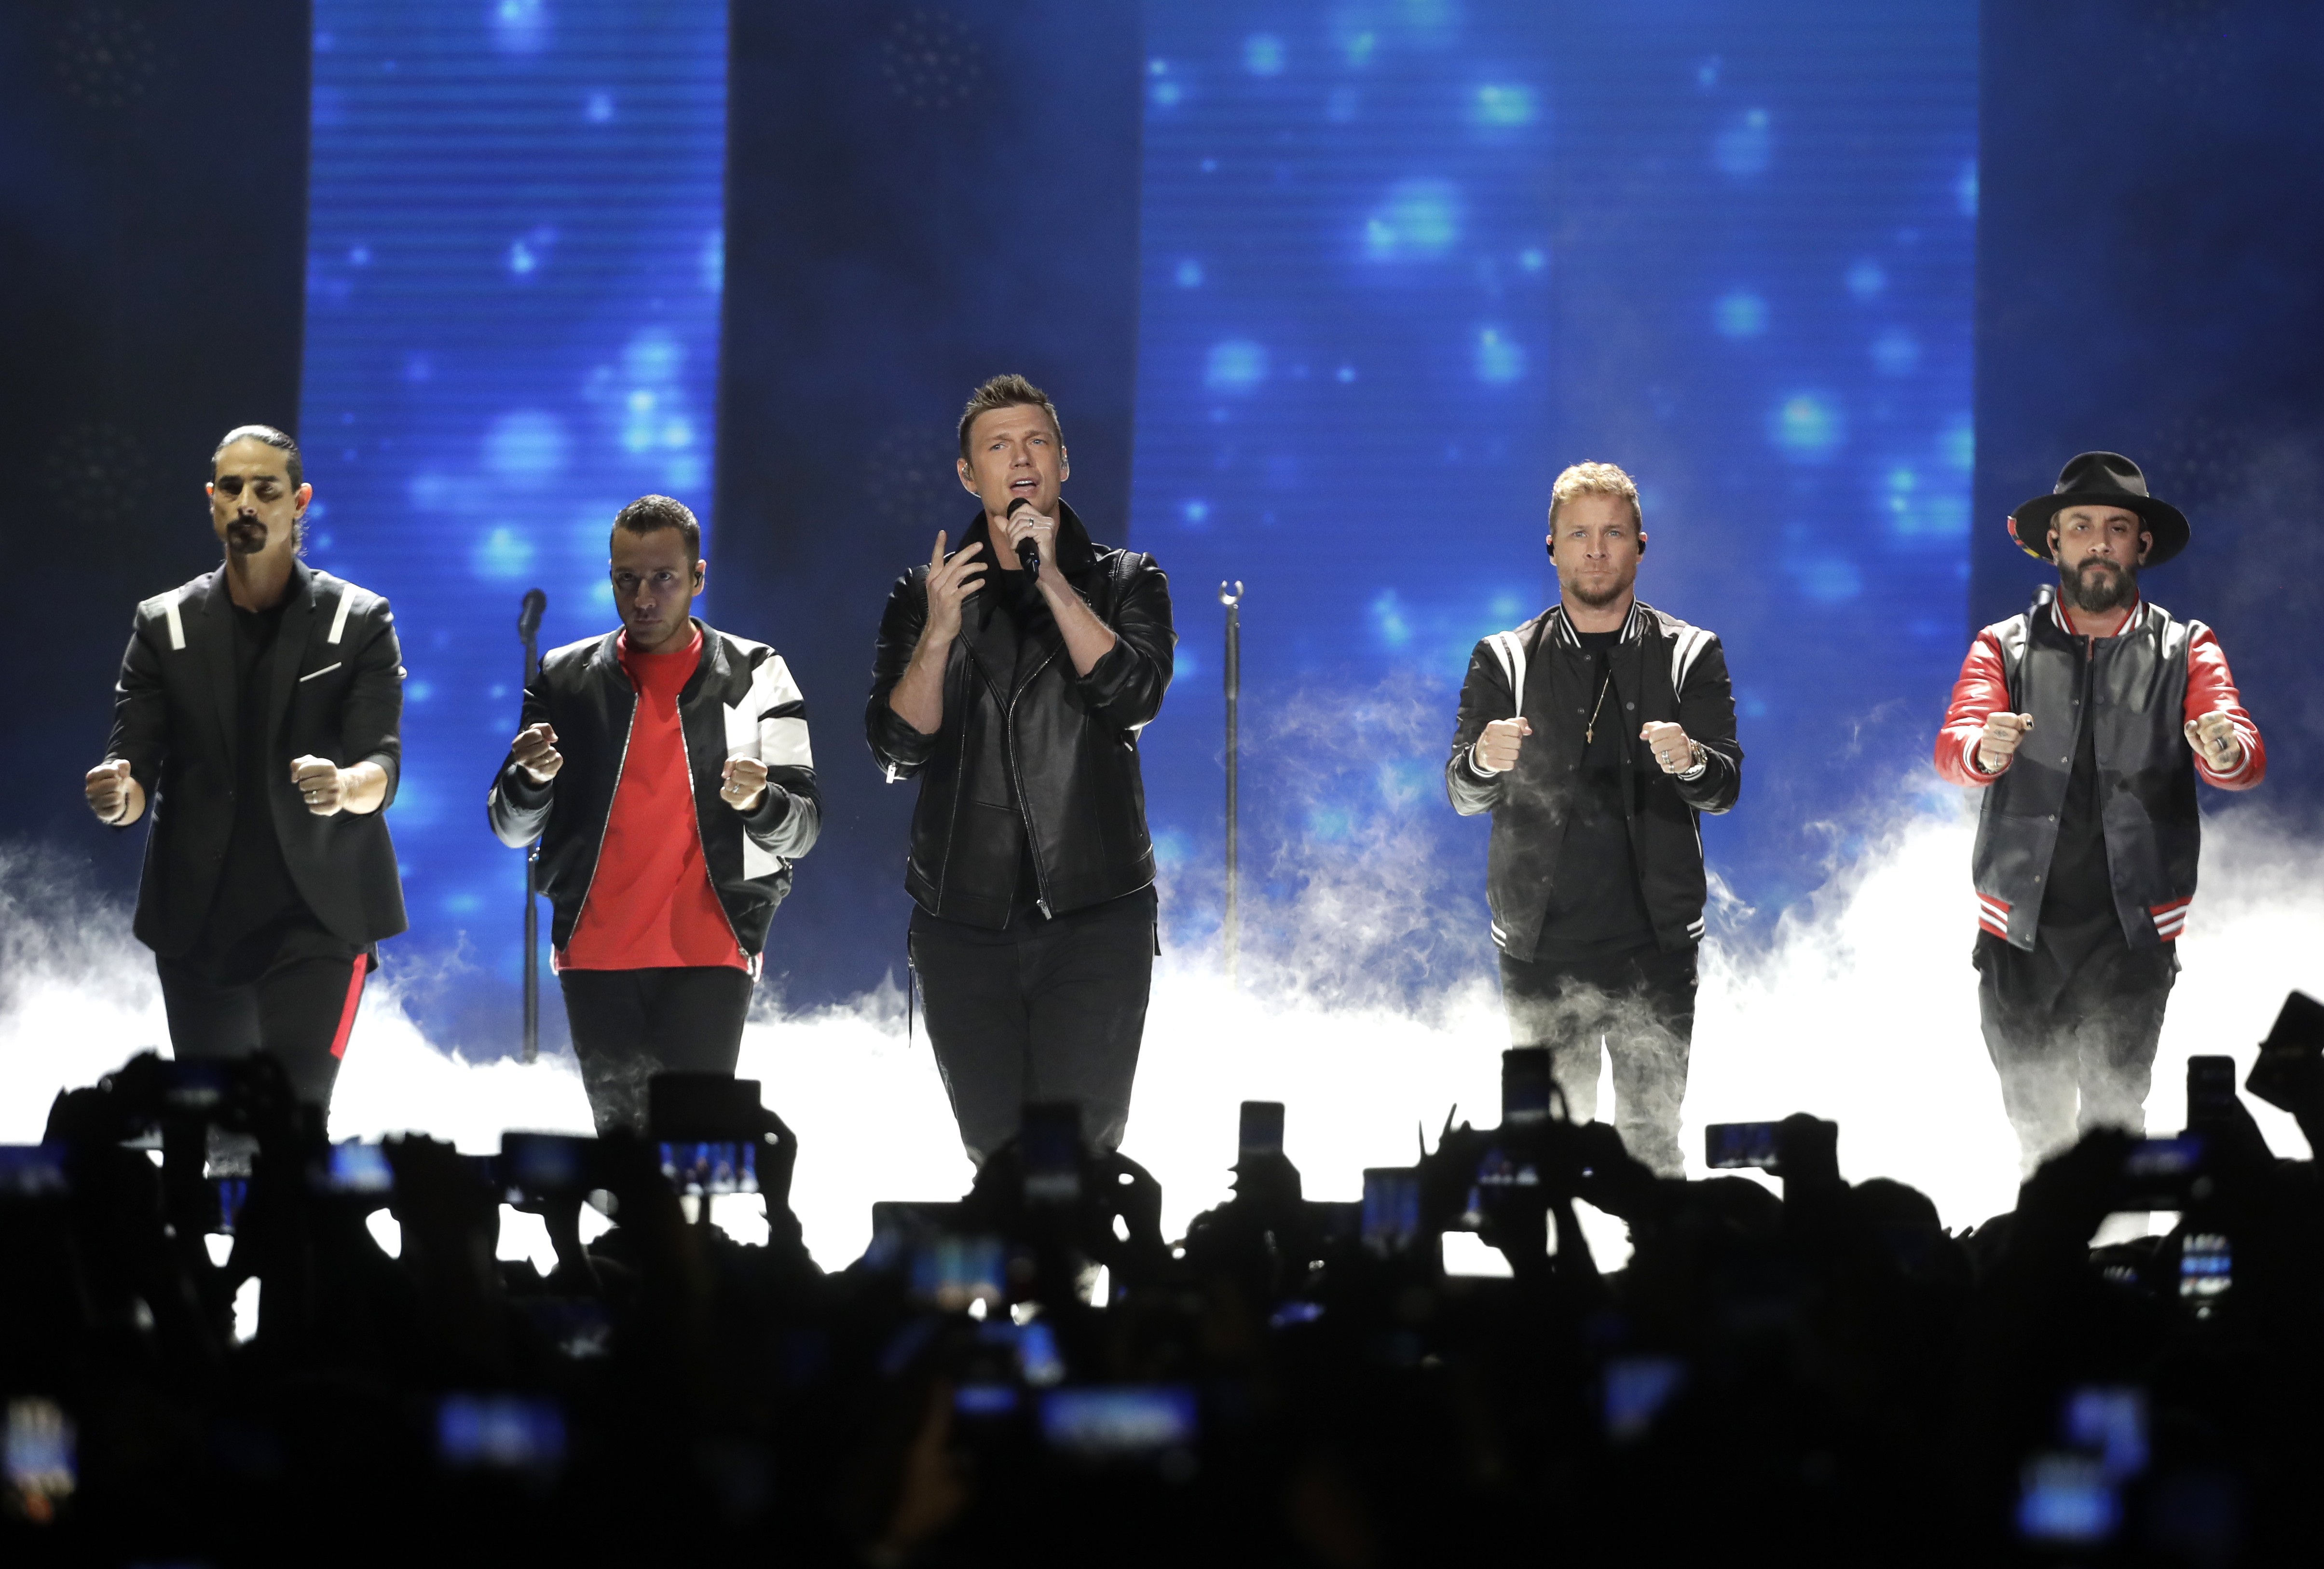 Tempestade atinge local do show dos Backstreet Boys e deixa feridos